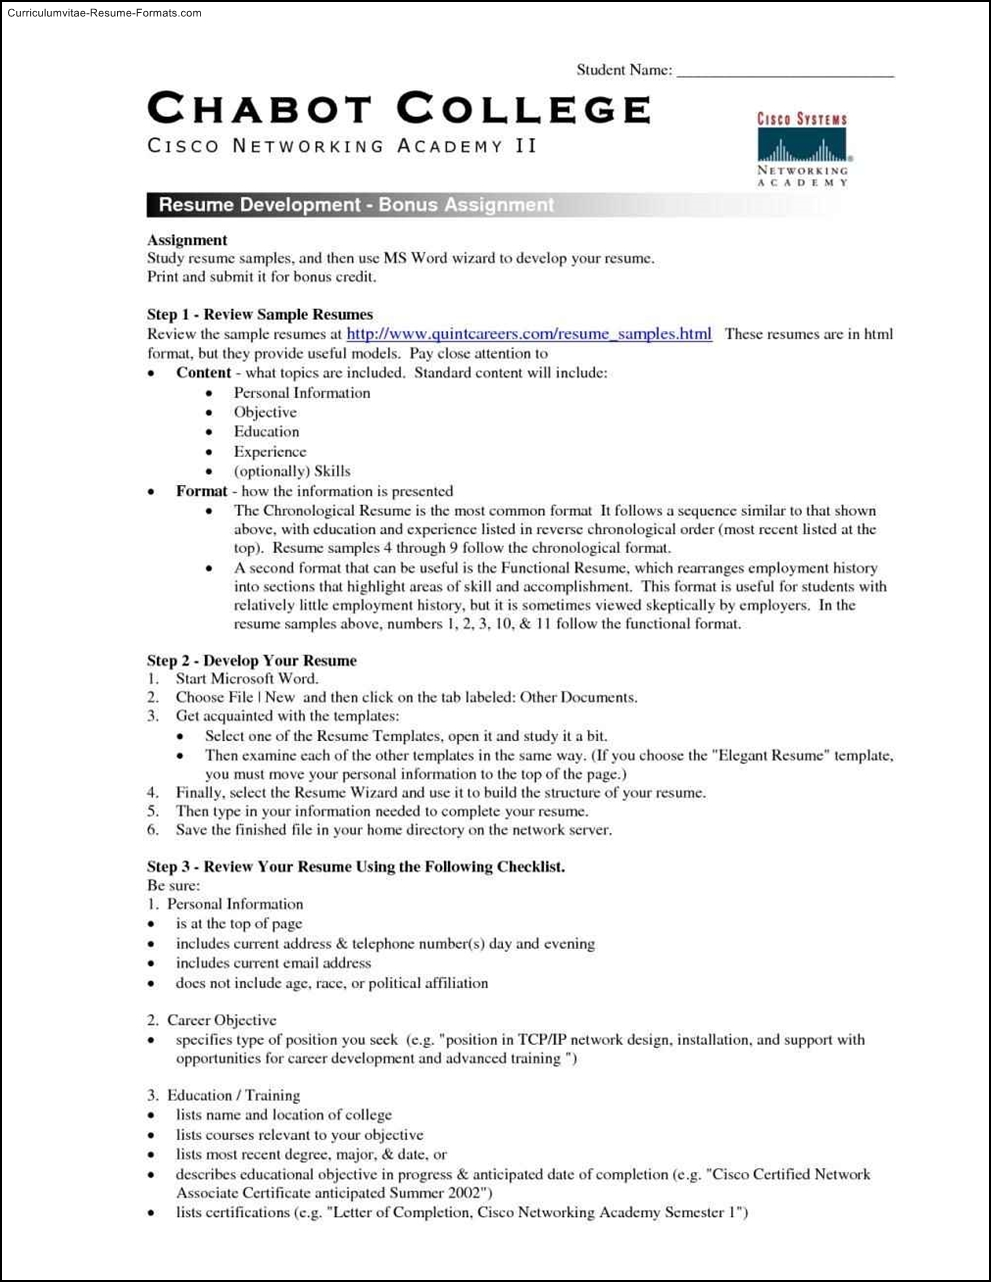 Free-Resume-Templates-For-College-Students Resume Examples For Recent College Graduate on resume examples for high school graduates, resume templates for recent college graduates, best resume for new graduates, resume examples for college professors, cover letters for recent college graduates, resume formats for college grads, resume format for new graduates, resume fresh graduate from college,